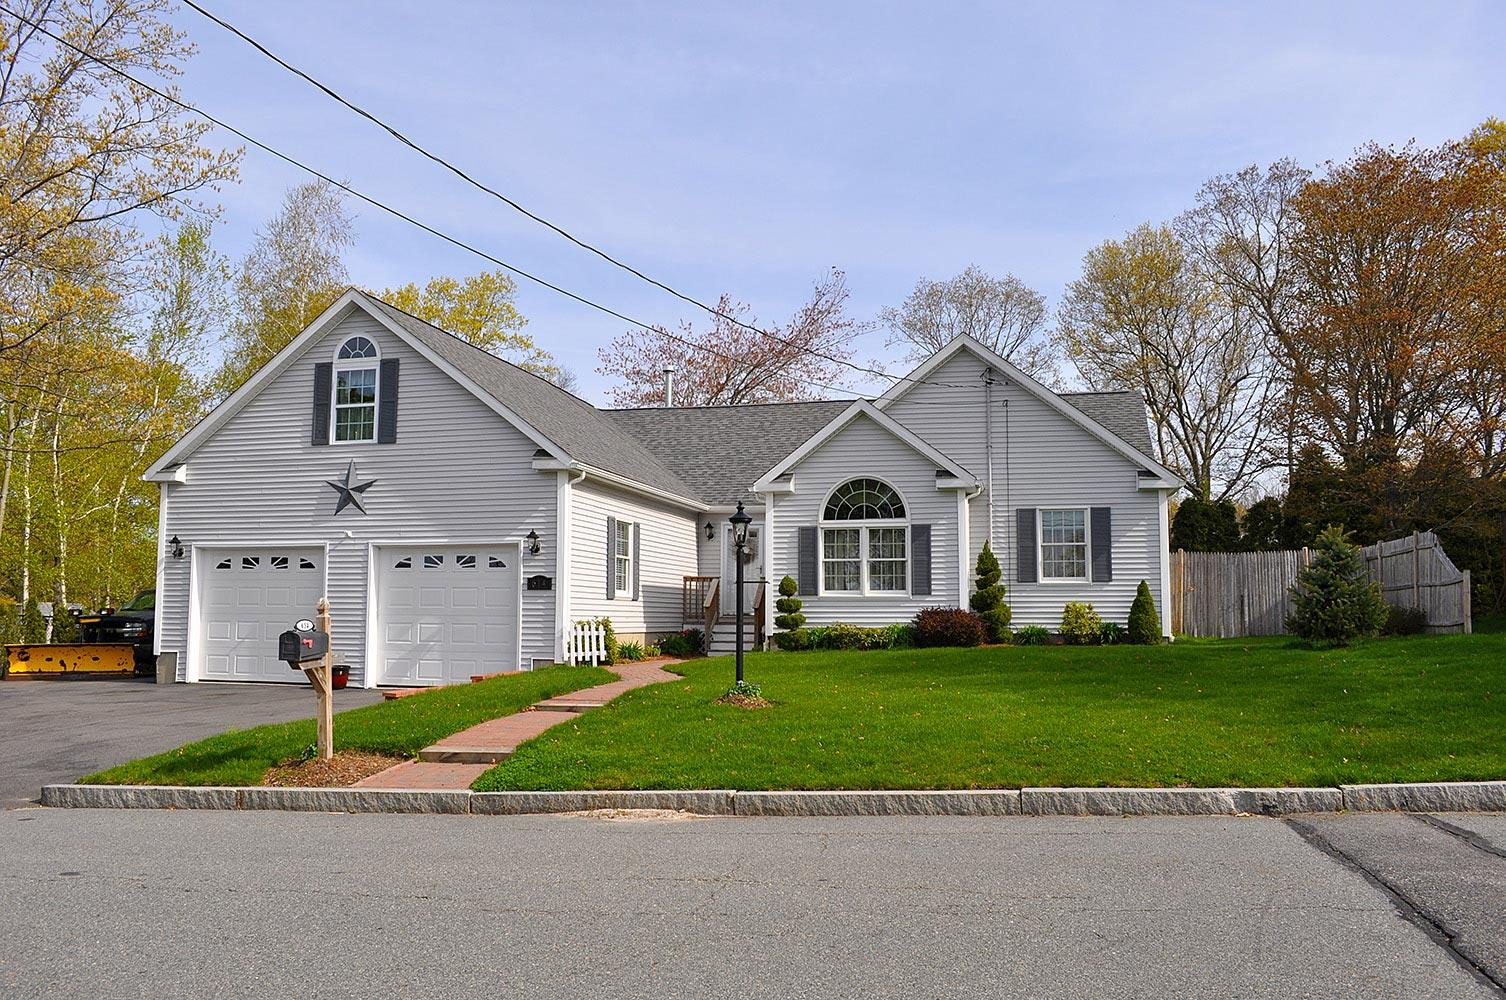 East coast homes in somerset ma 02726 for Home builders in ma